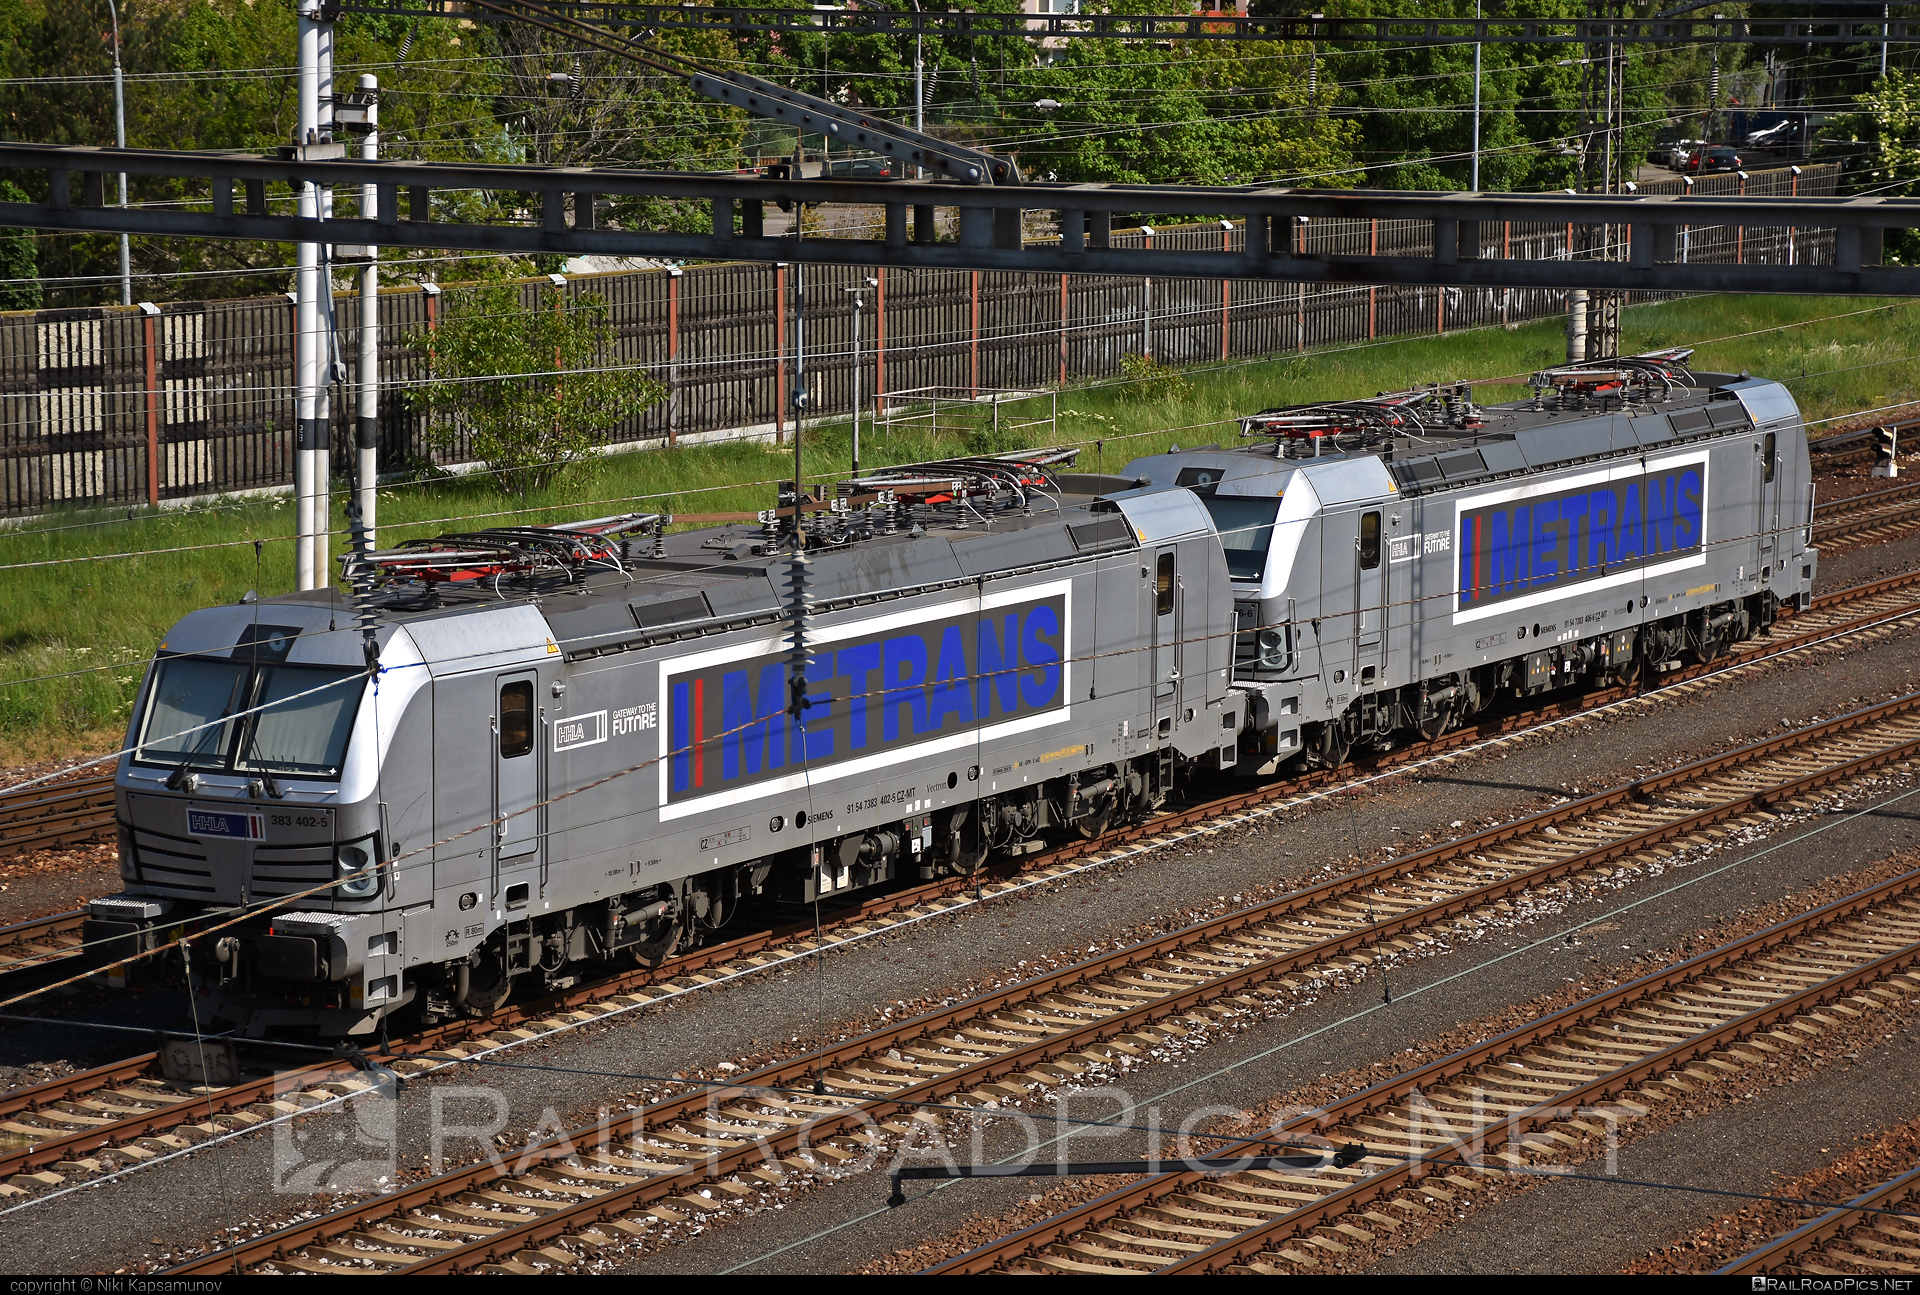 Siemens Vectron MS - 383 402-5 operated by METRANS, a.s. #hhla #metrans #siemens #siemensvectron #siemensvectronms #vectron #vectronms